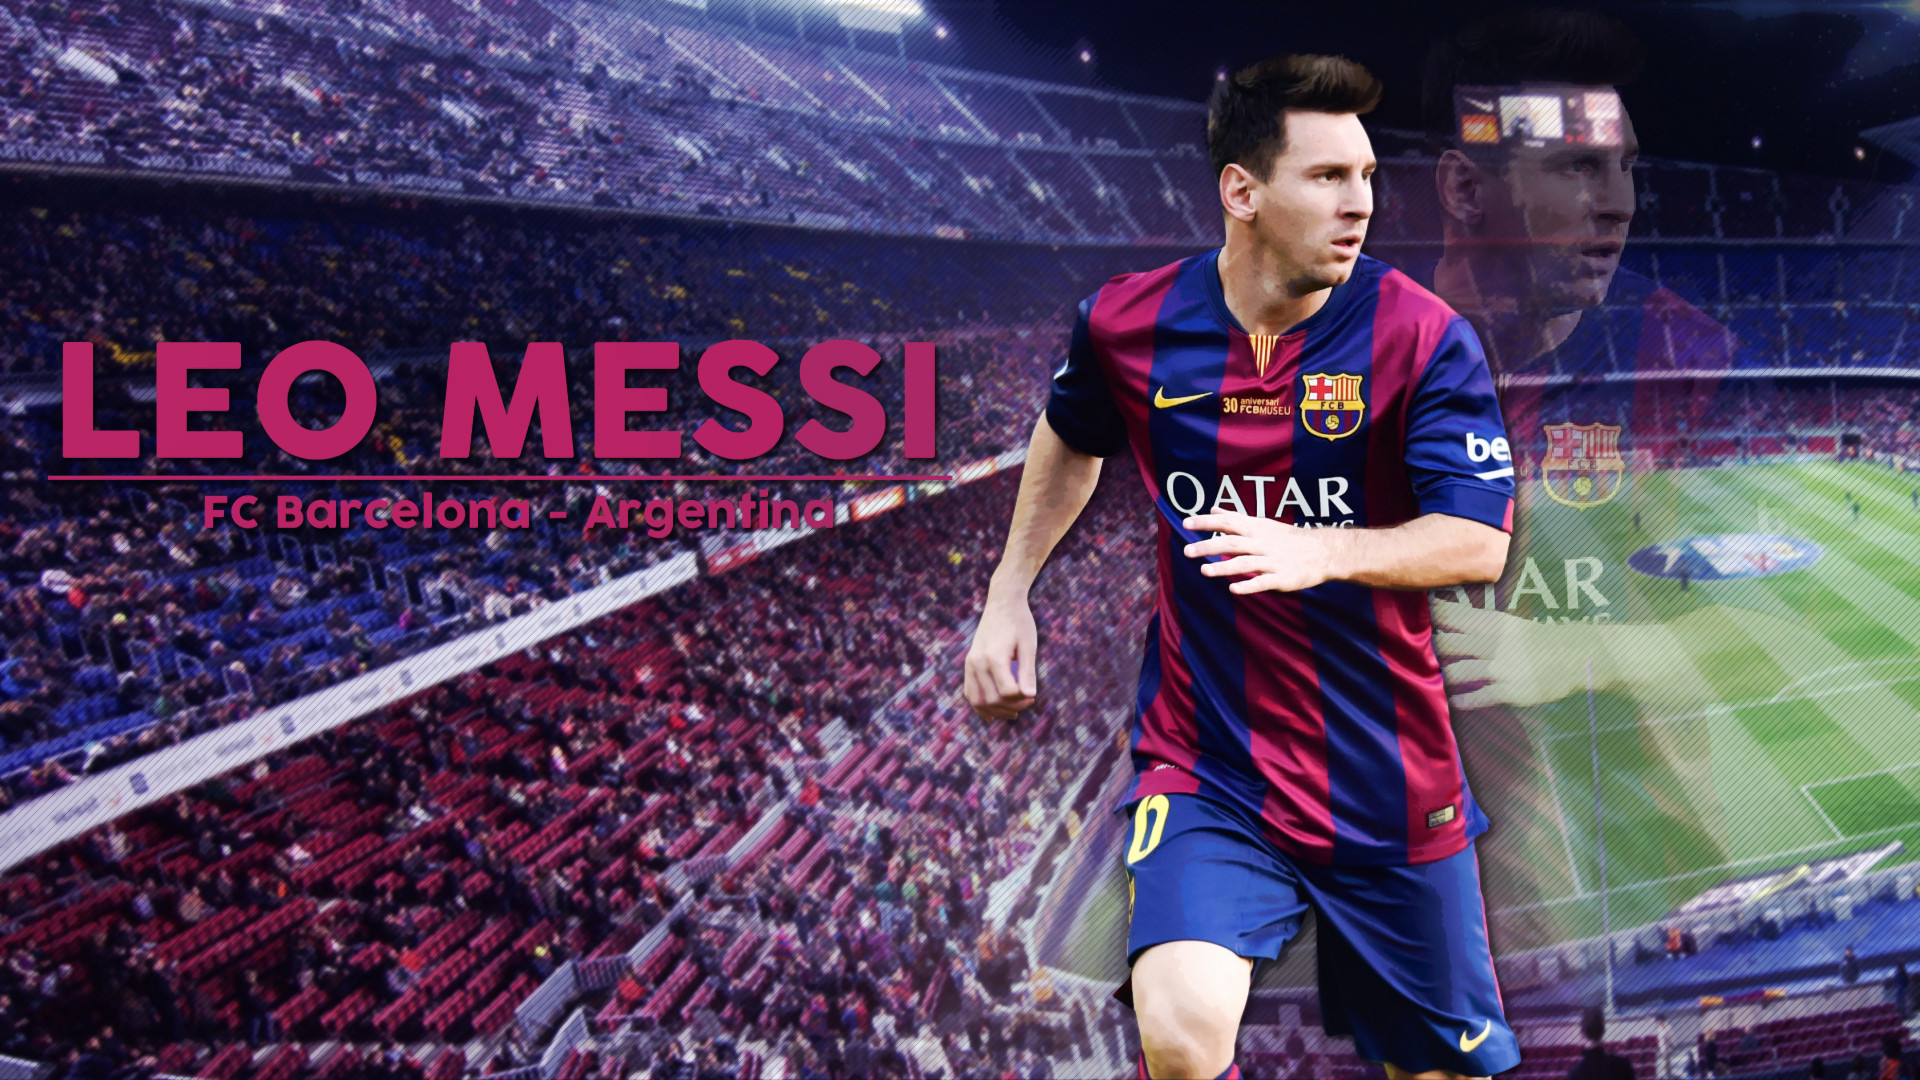 1920x1280 Lionel Messi 2014 World Cup Wallpaper